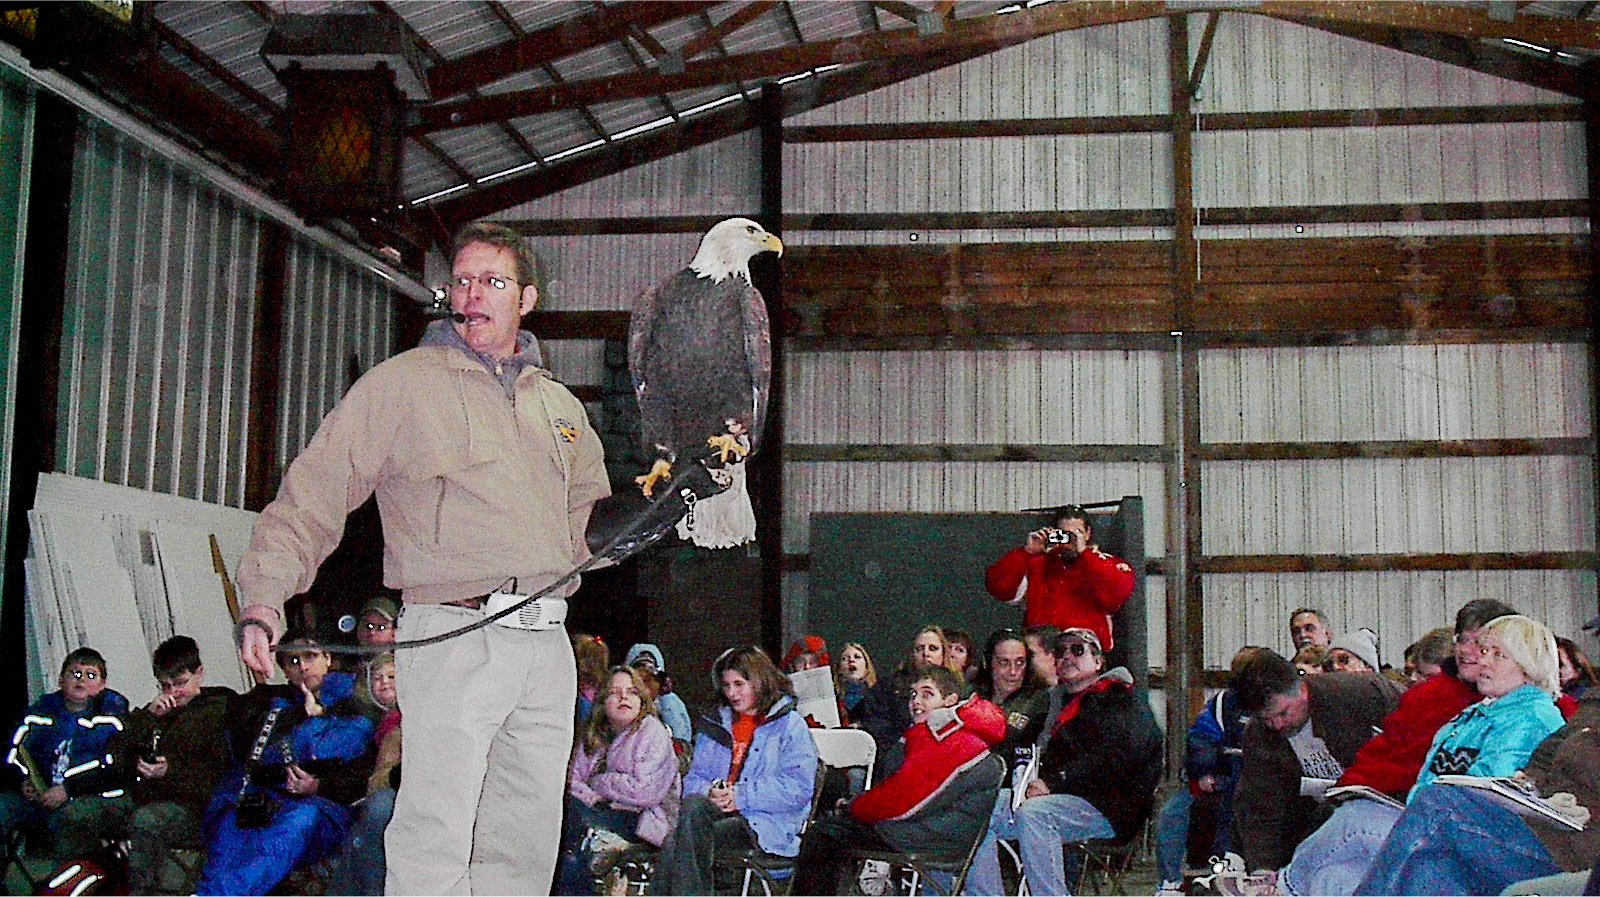 Eagle Days in Clarksville in January